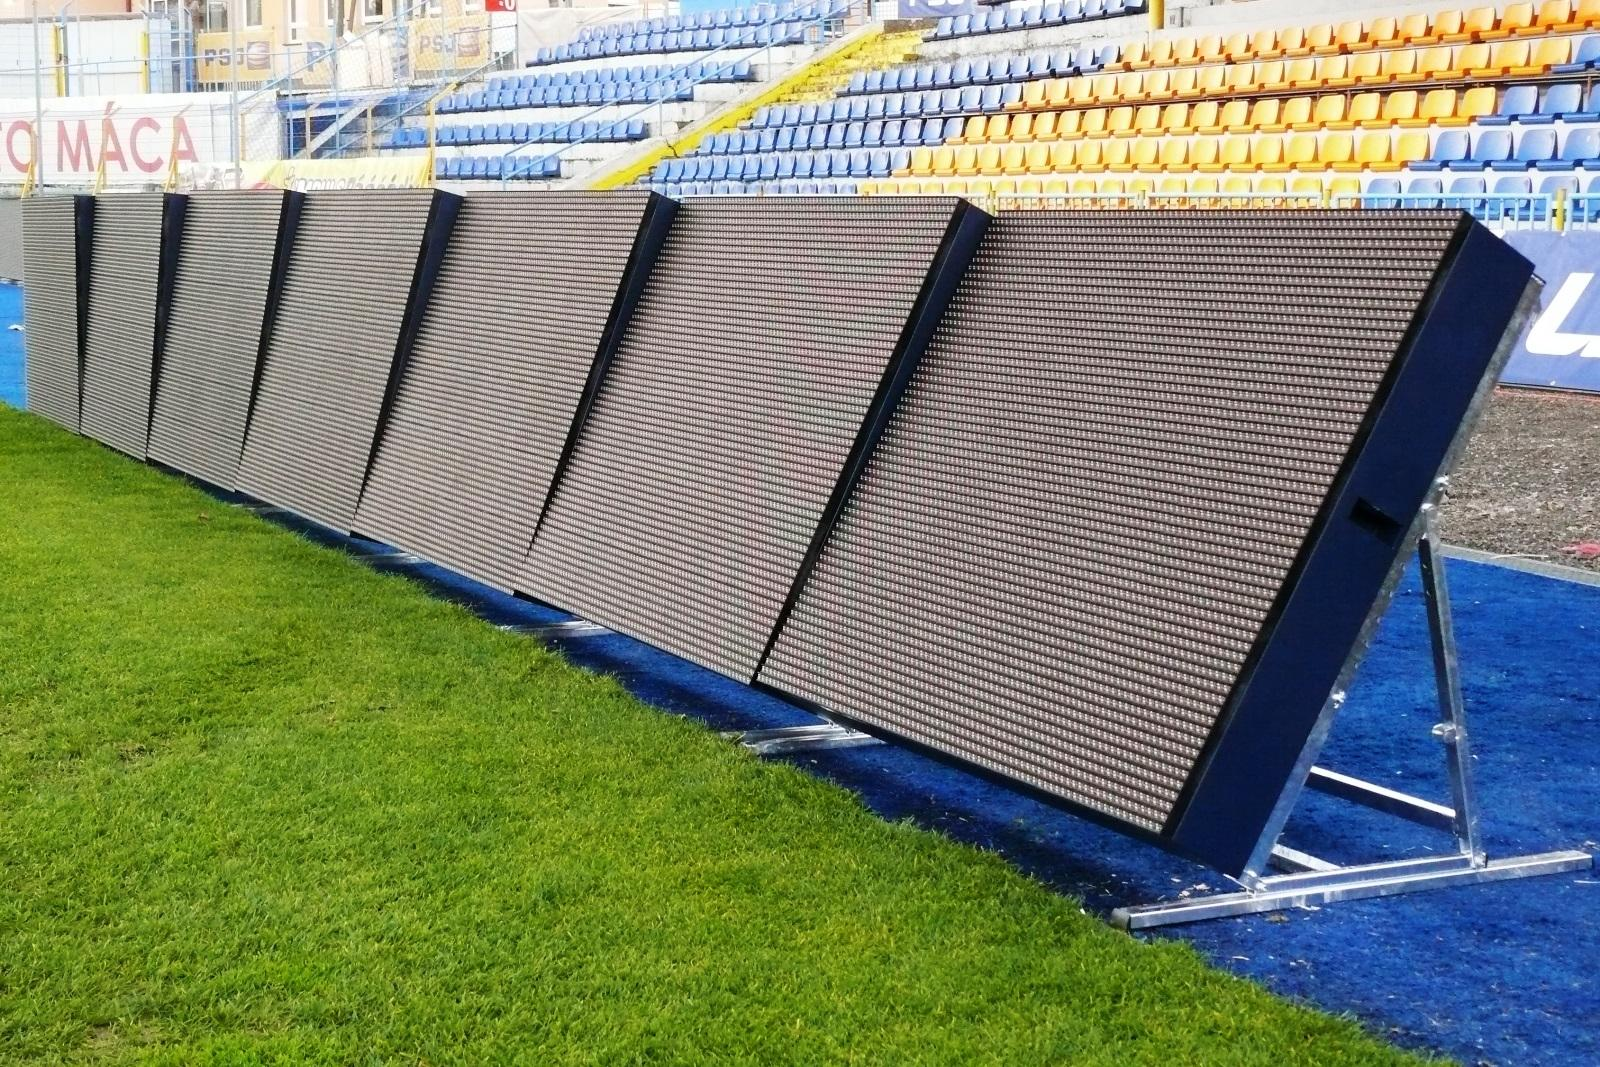 P8mm Outdoor LED Display Full Color High Definition Energy Saving 1